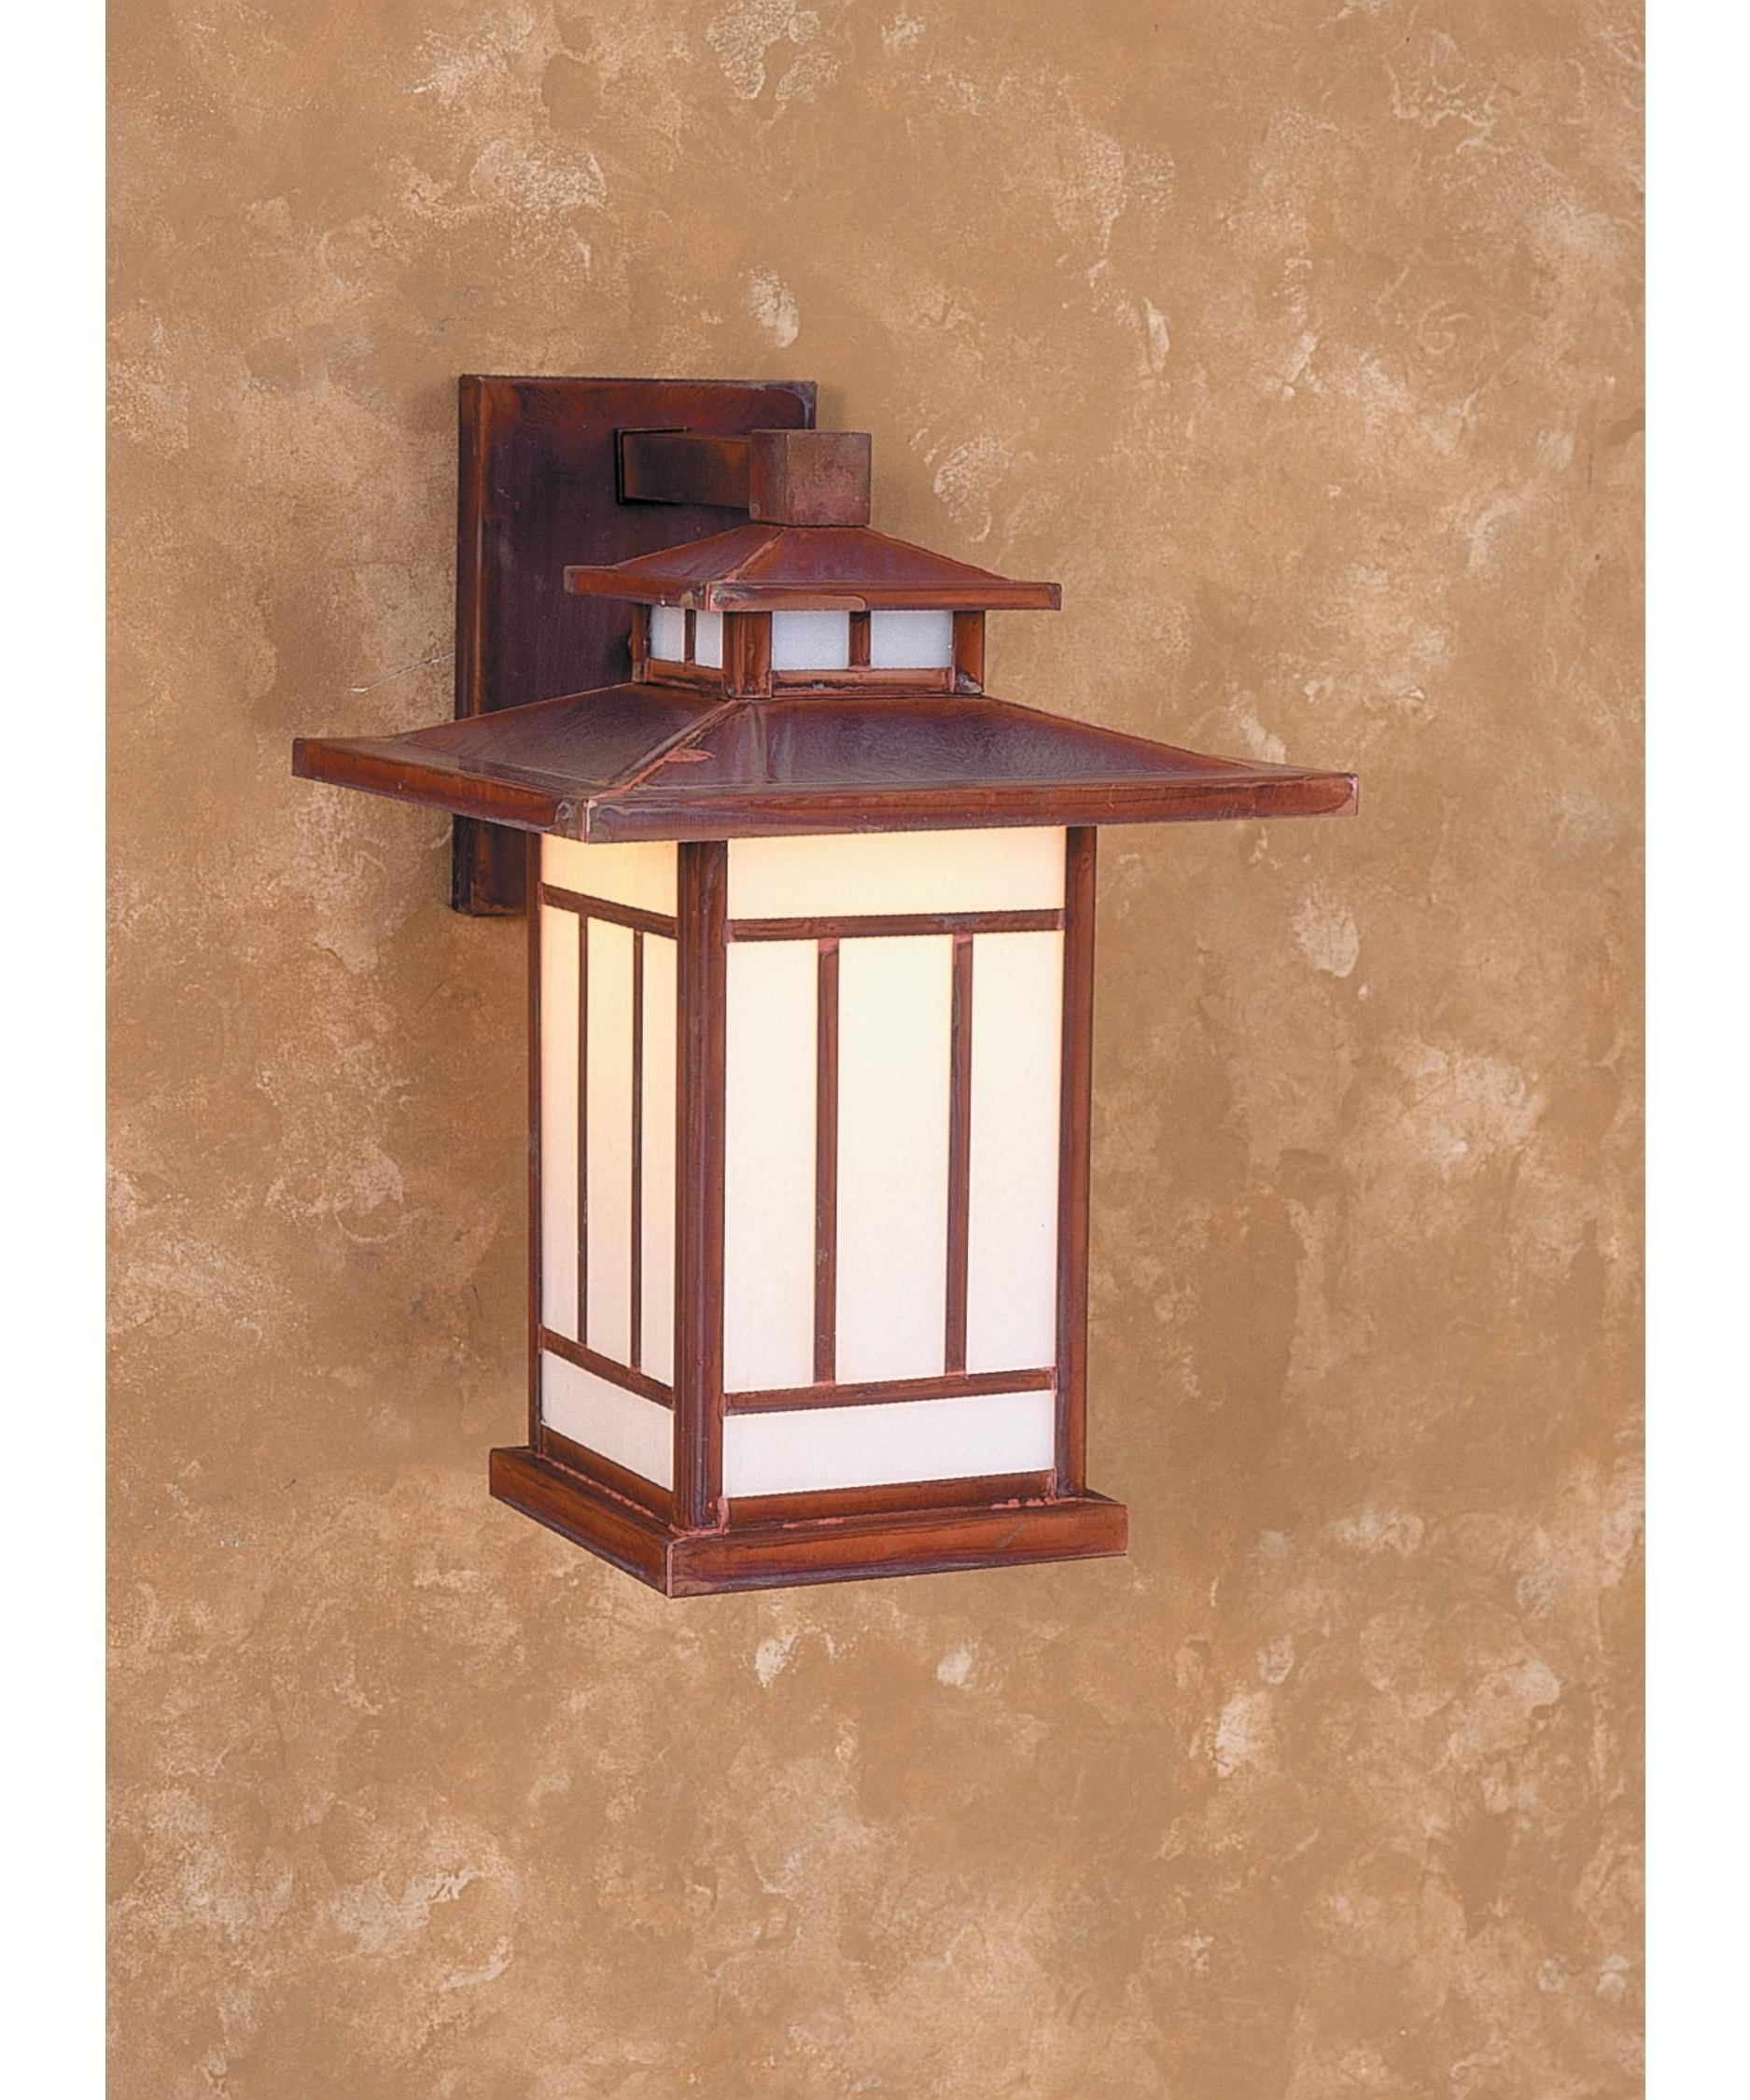 Arroyo Craftsman Kennebec Shown In Raw Copper Finish And White Regarding Most Recently Released Made In Usa Outdoor Wall Lighting (View 8 of 20)